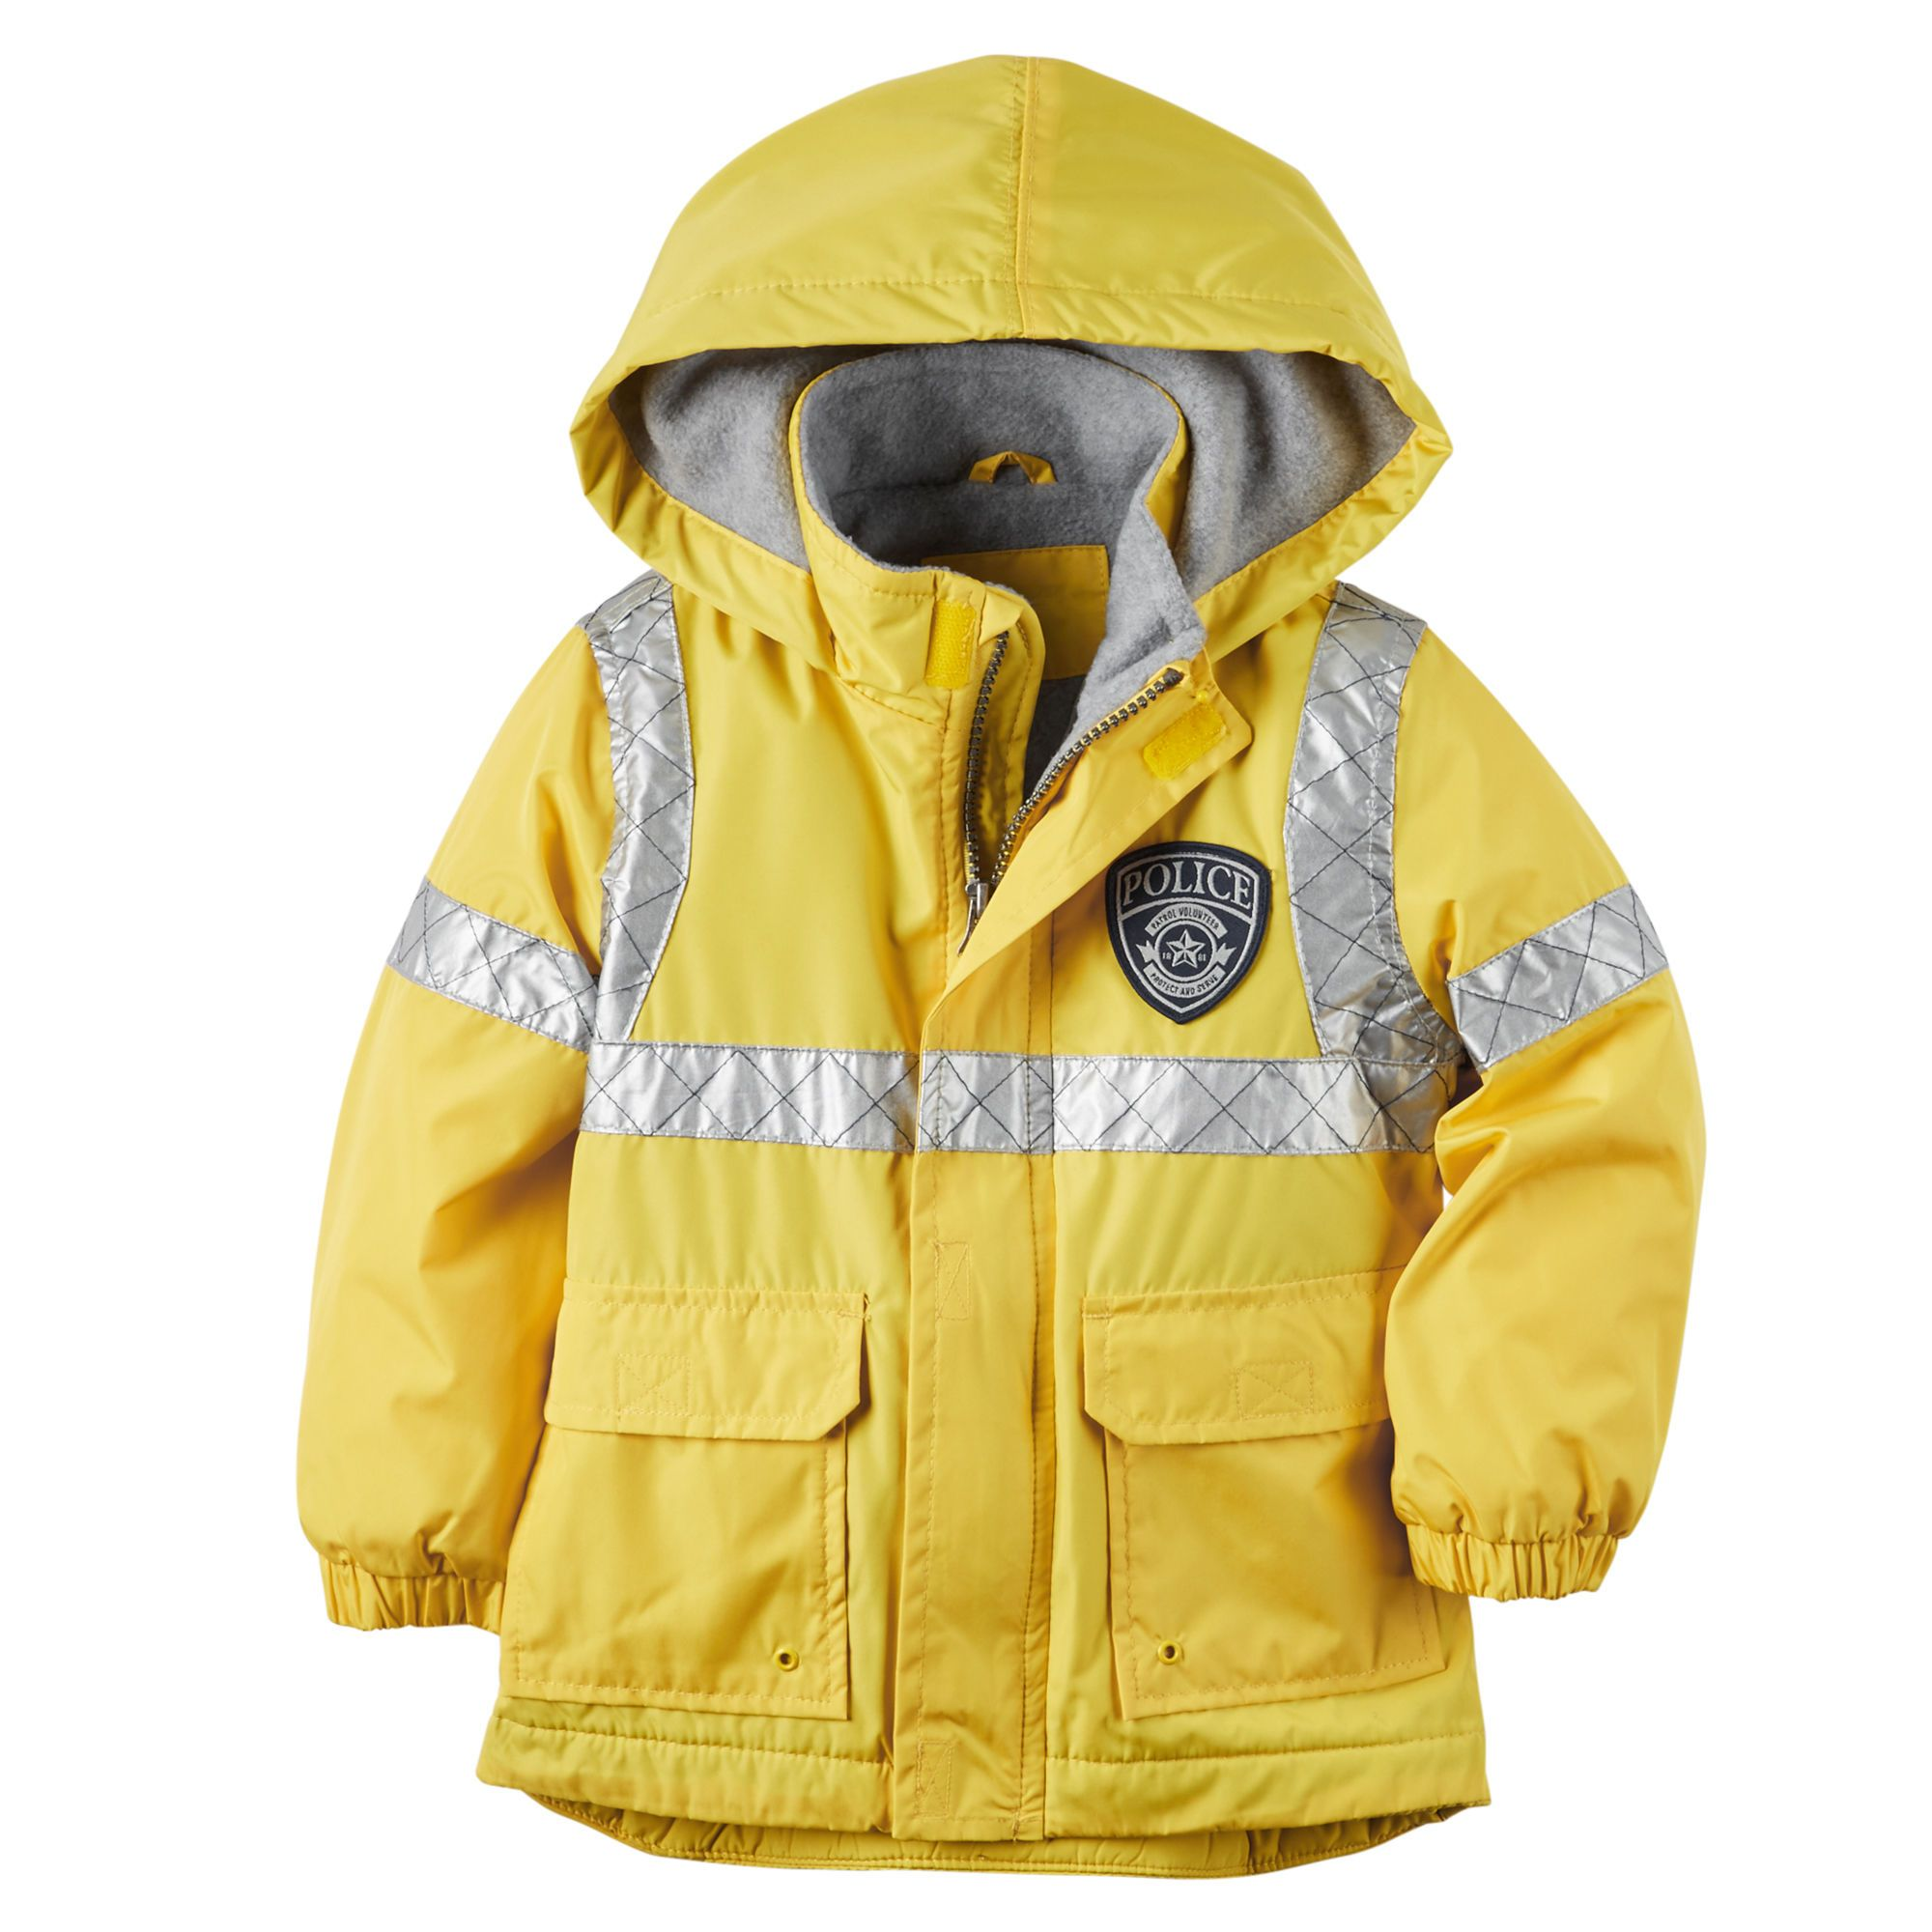 2a1ad8bc4873 Fleece-Lined Police Rain Jacket for kids + yellow raincoat with ...